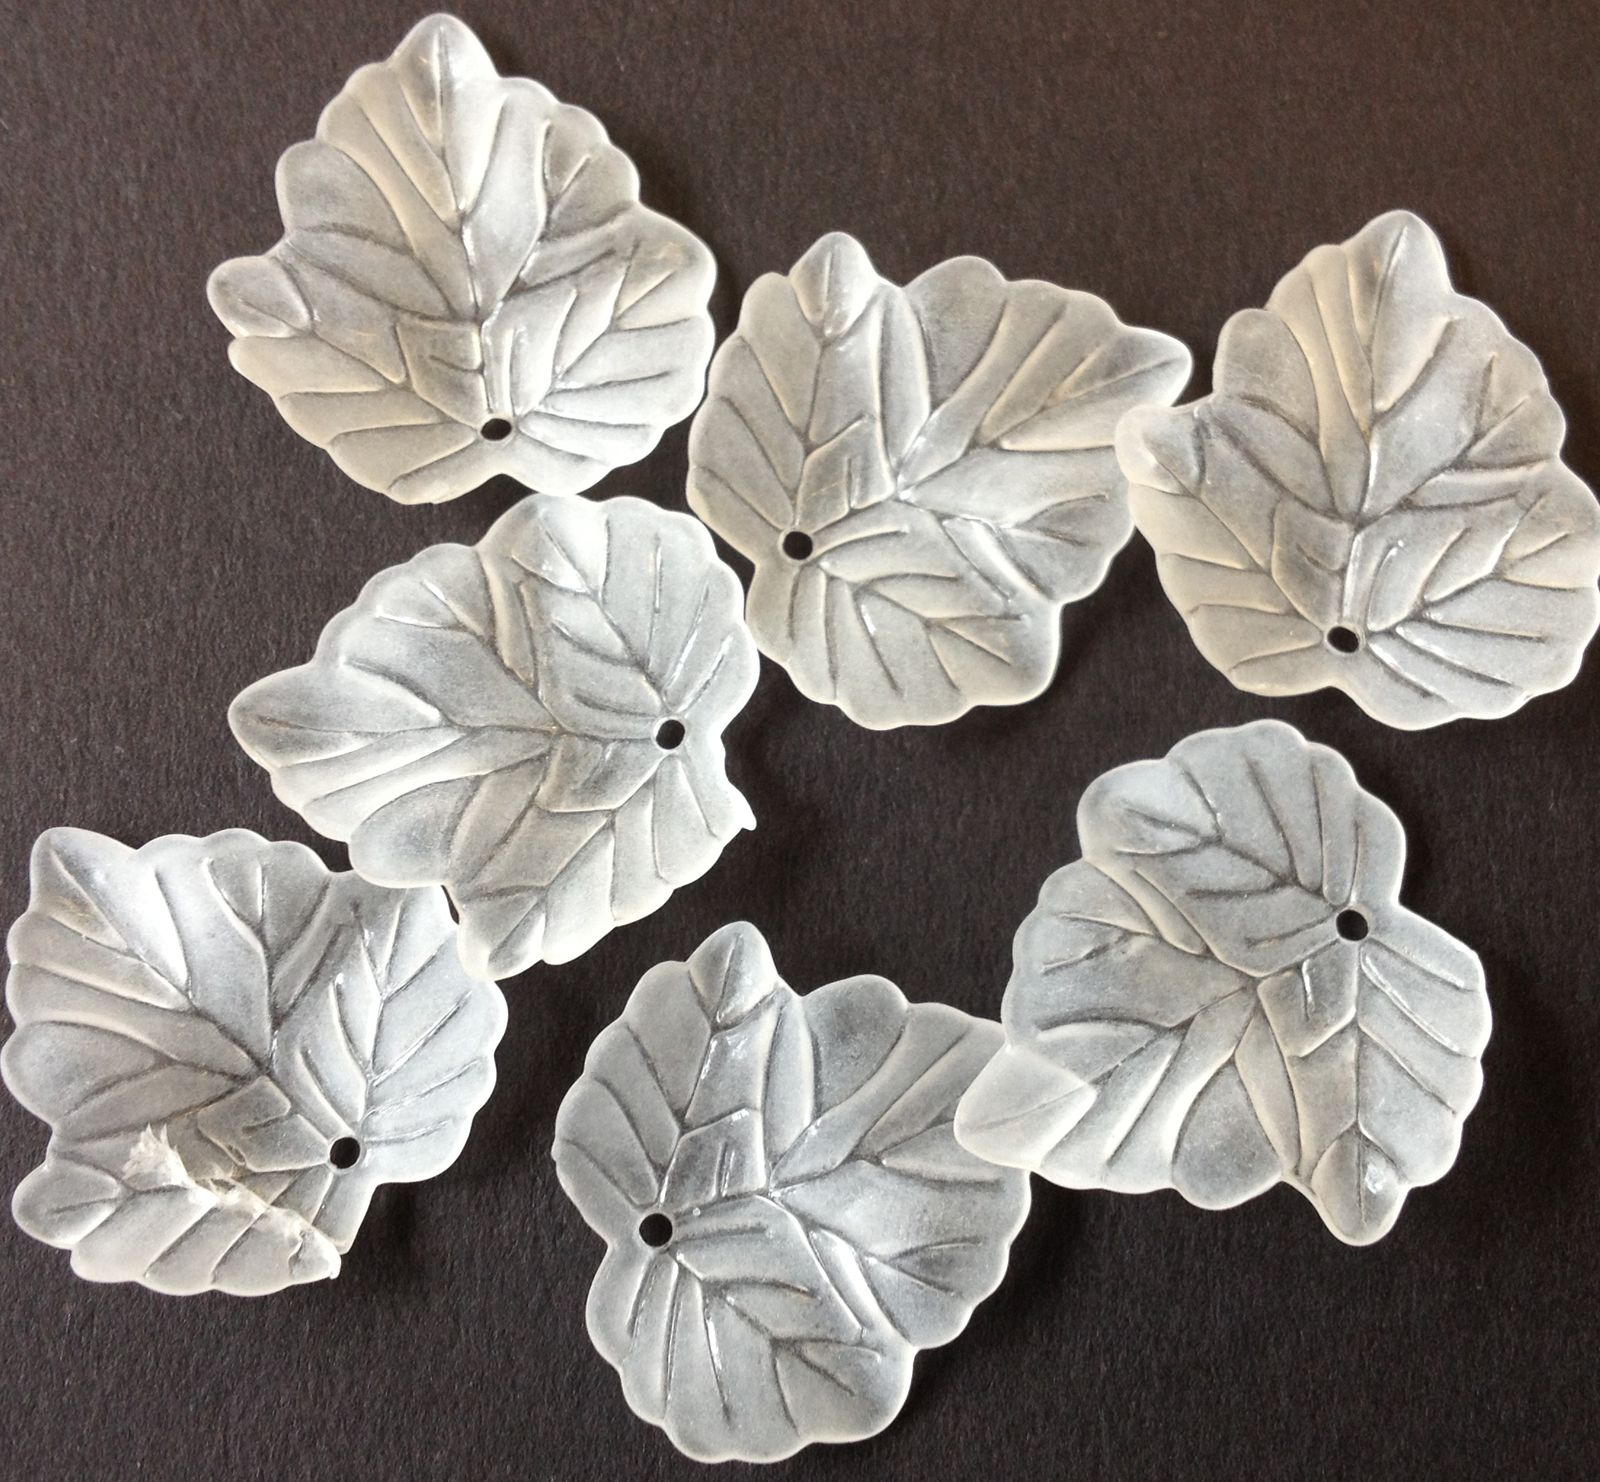 L6 Leaves 32 'Lucite' transparent Acrylic Beads, white 22.5mm